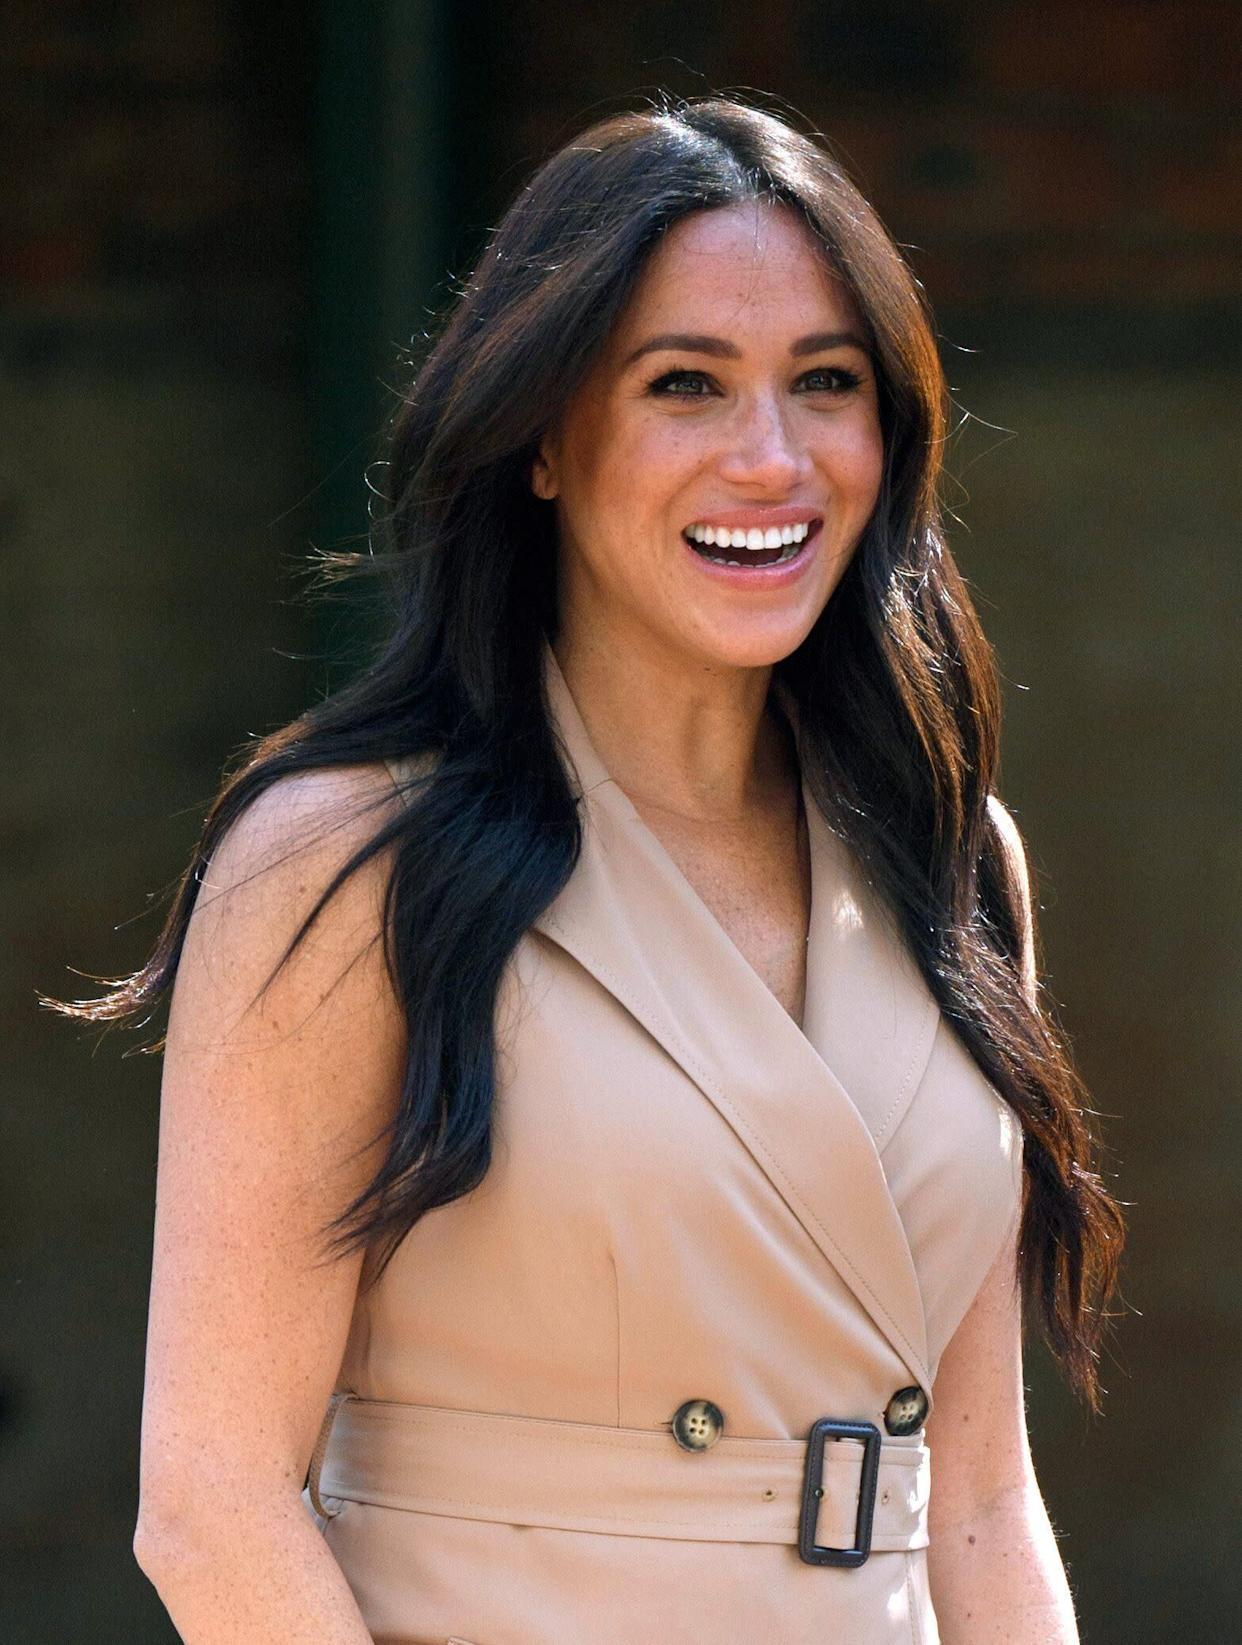 The Duchess of Sussex, patron of the Association of Commonwealth Universities, visits the University of Johannesburg in South Africa on Oct. 1. (Photo: Pool via Getty Images)